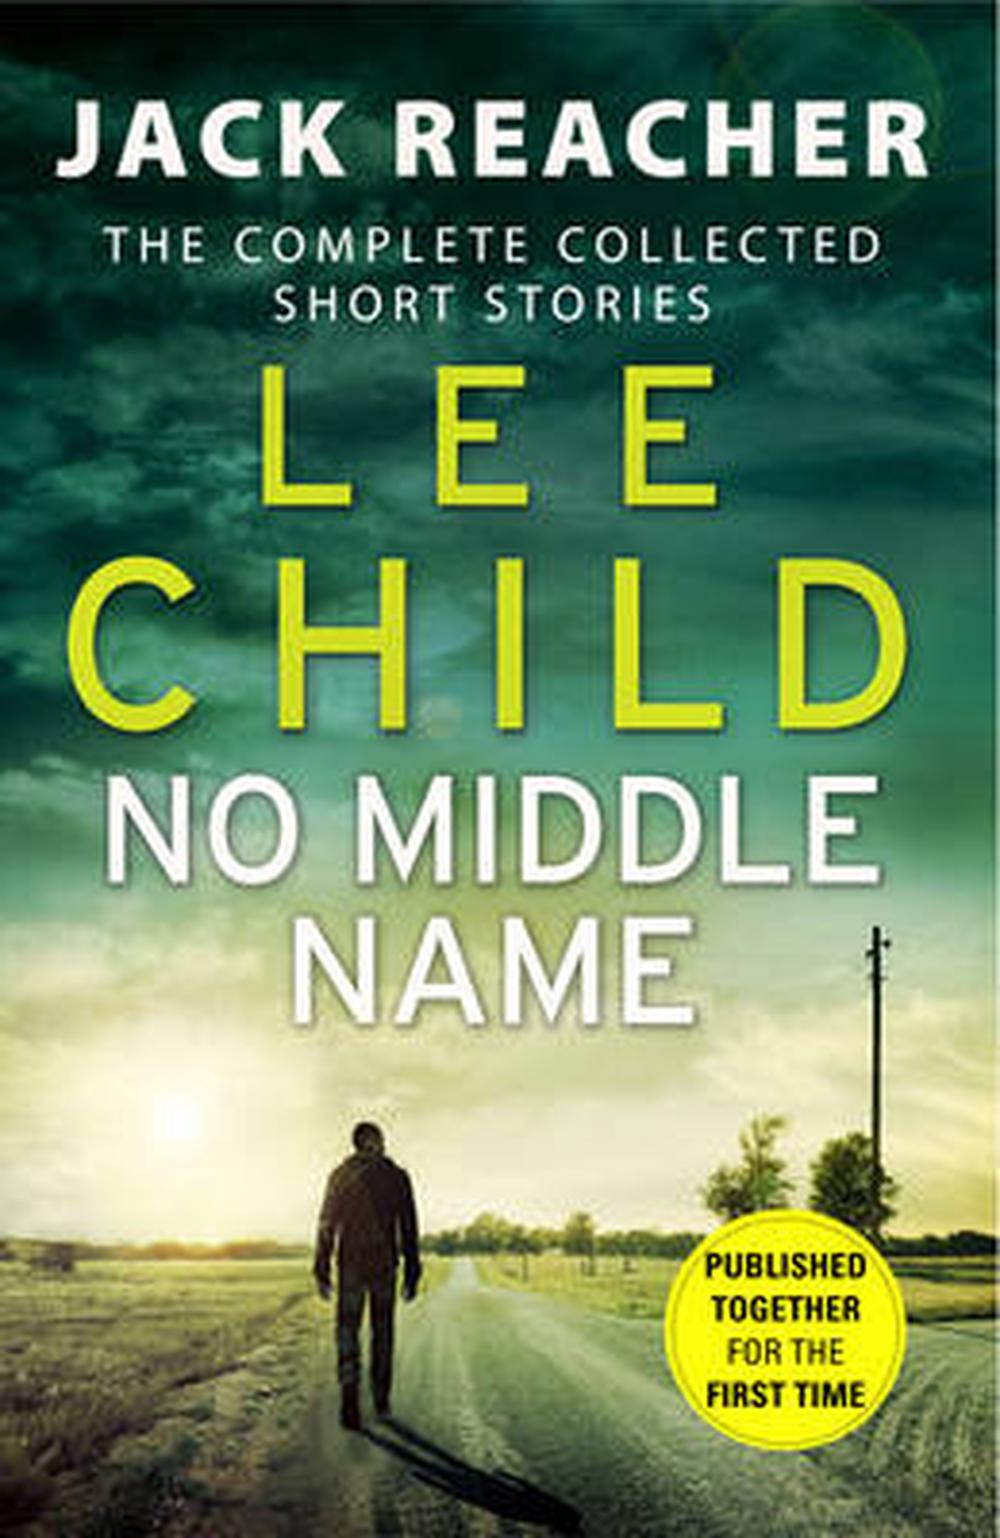 No Middle Name: Jack Reacher The Complete Collected Short Stories